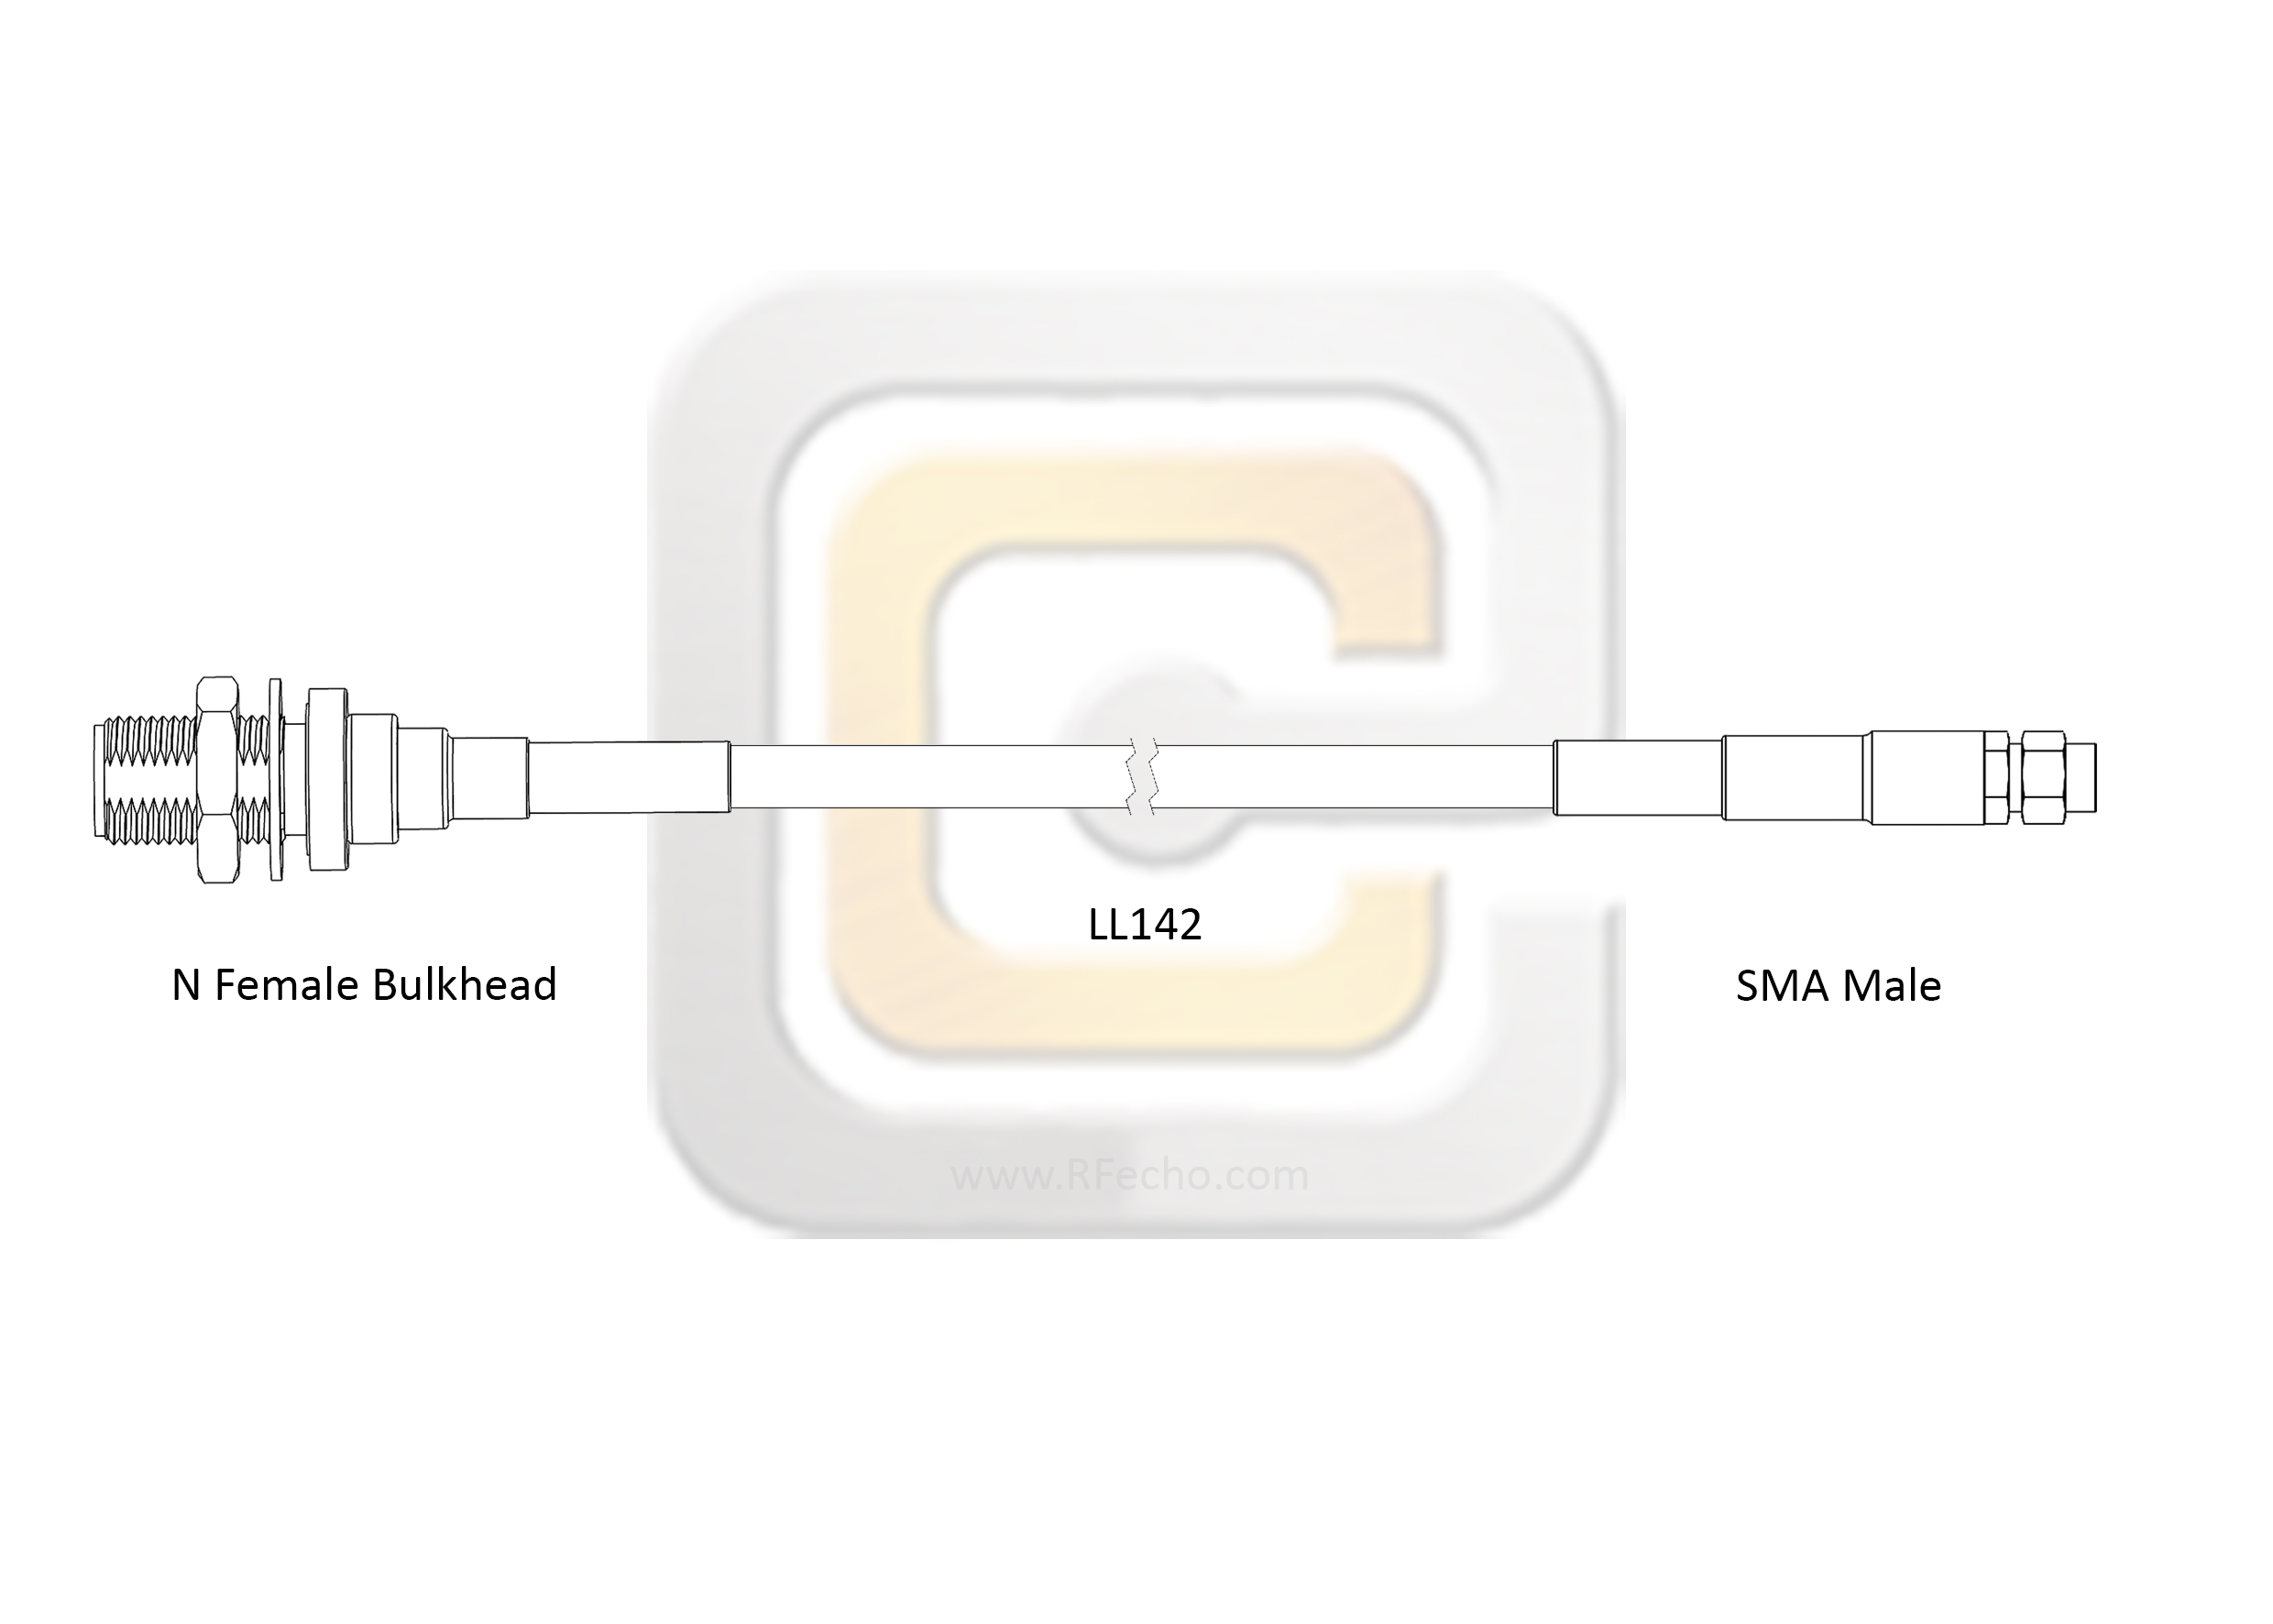 Low Loss SMA Male to N Female Bulkhead, 18 GHz, composite LL142 Coax and RoHS